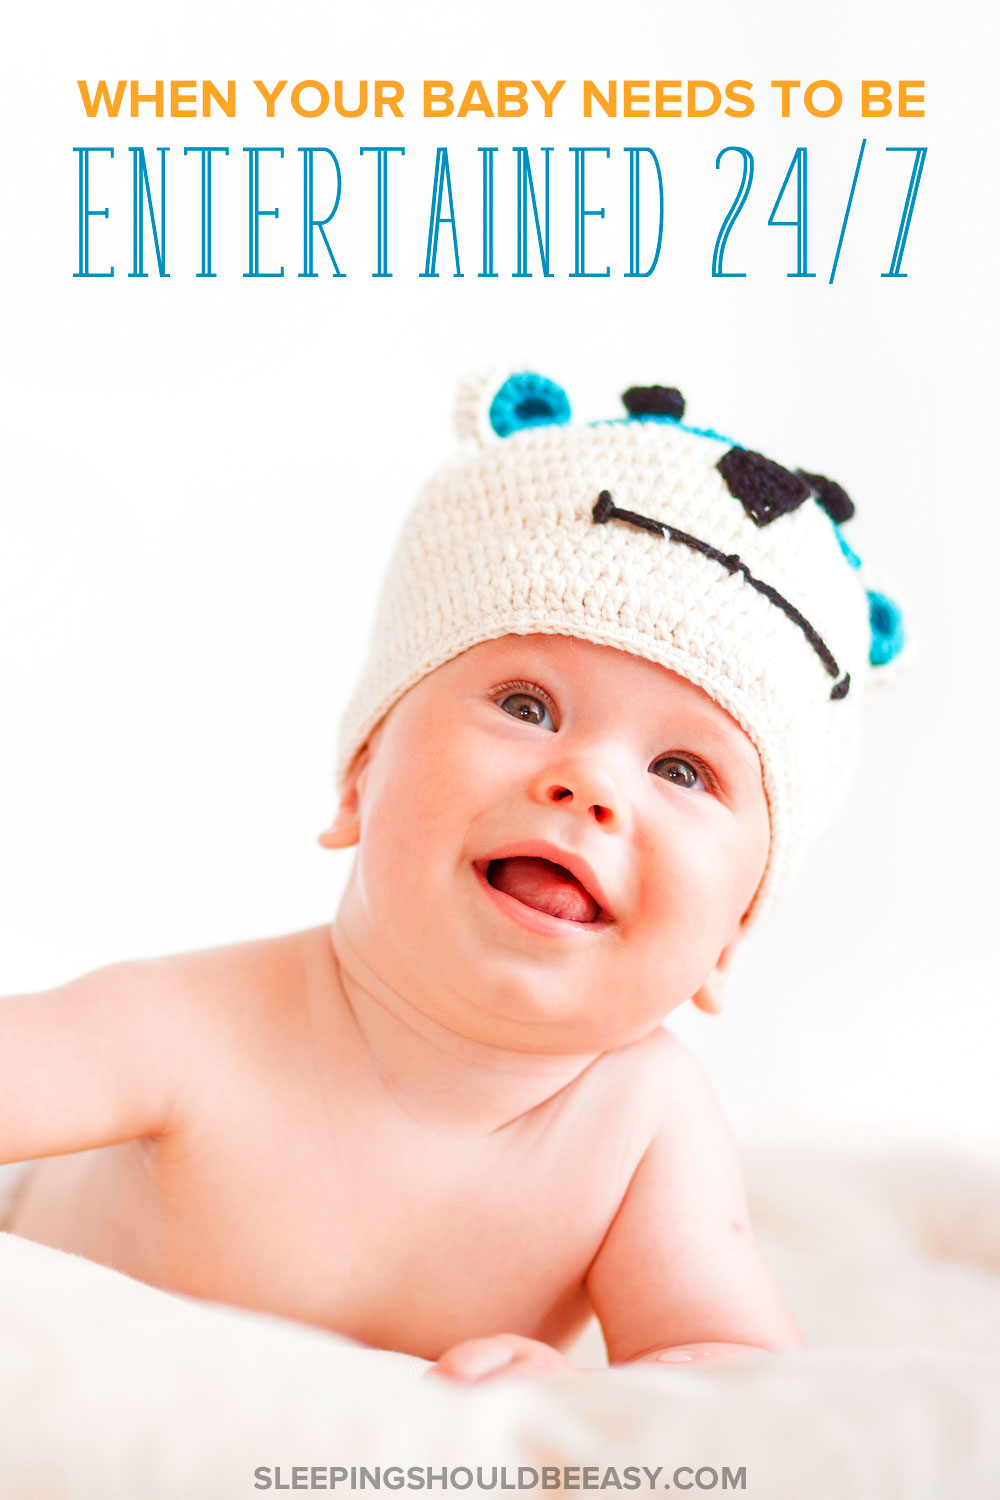 How to Survivve when You Need to Keep Baby Entertained